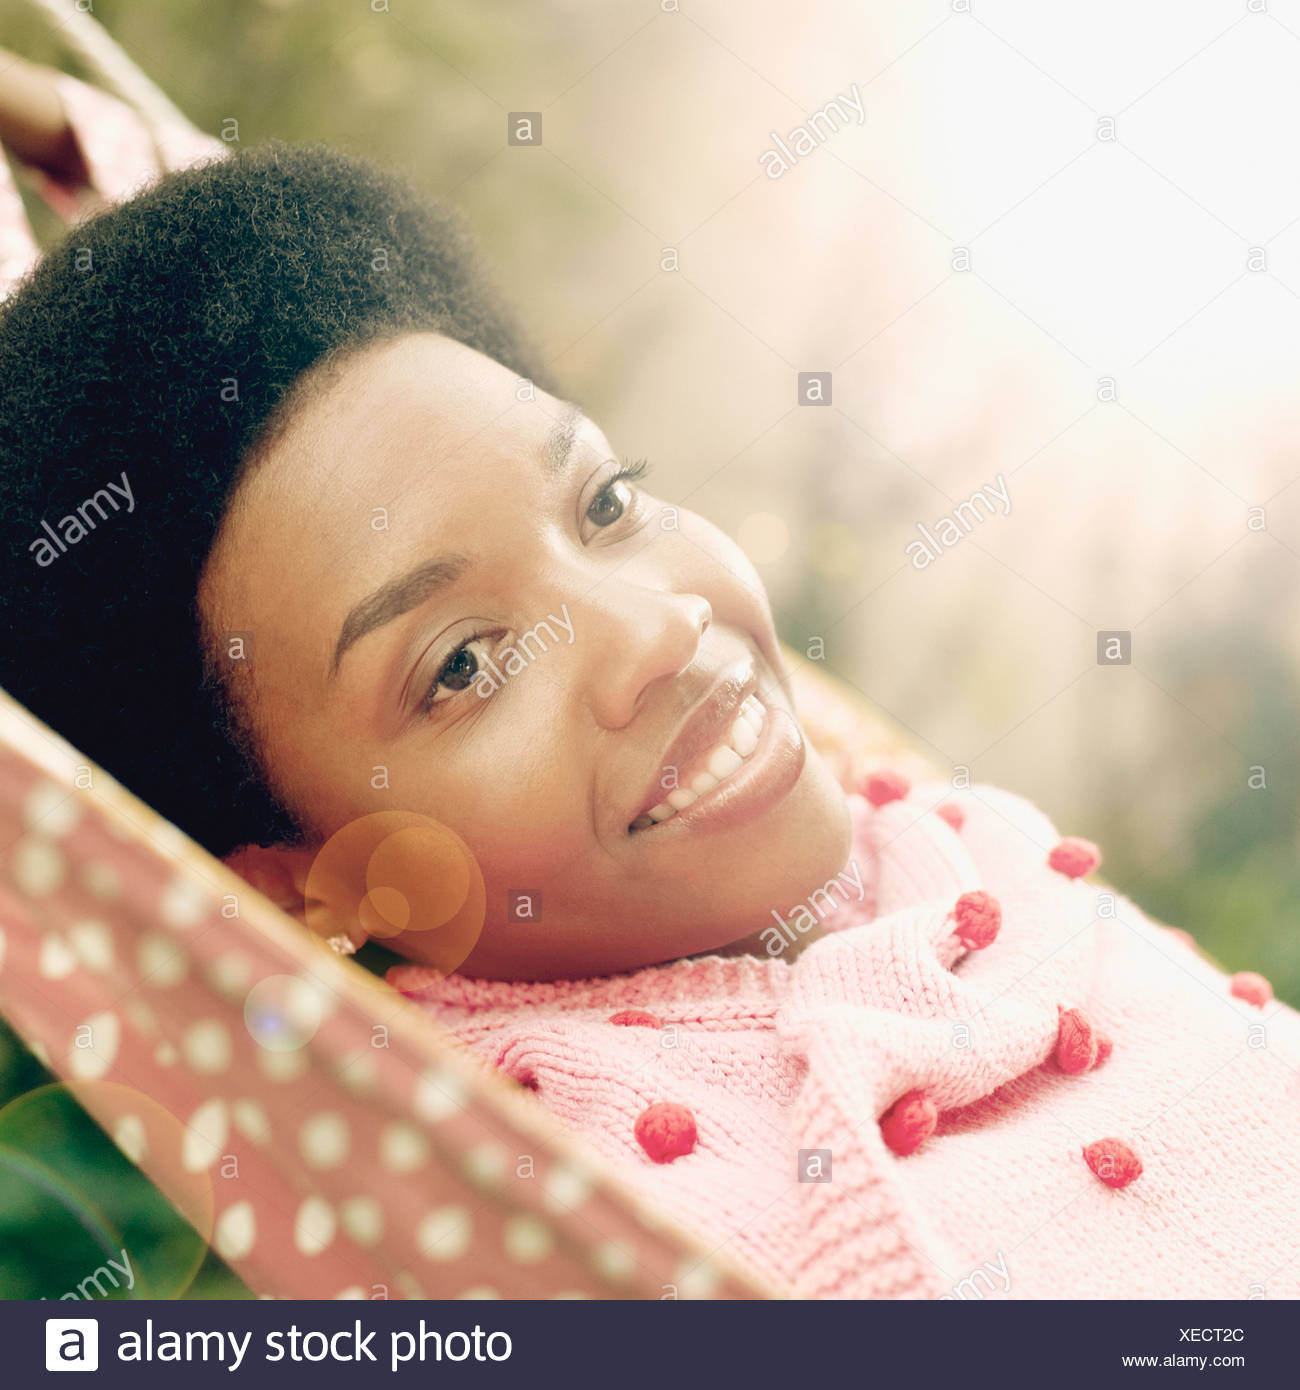 Close-up of a young woman smiling and lying in a hammock - Stock Image